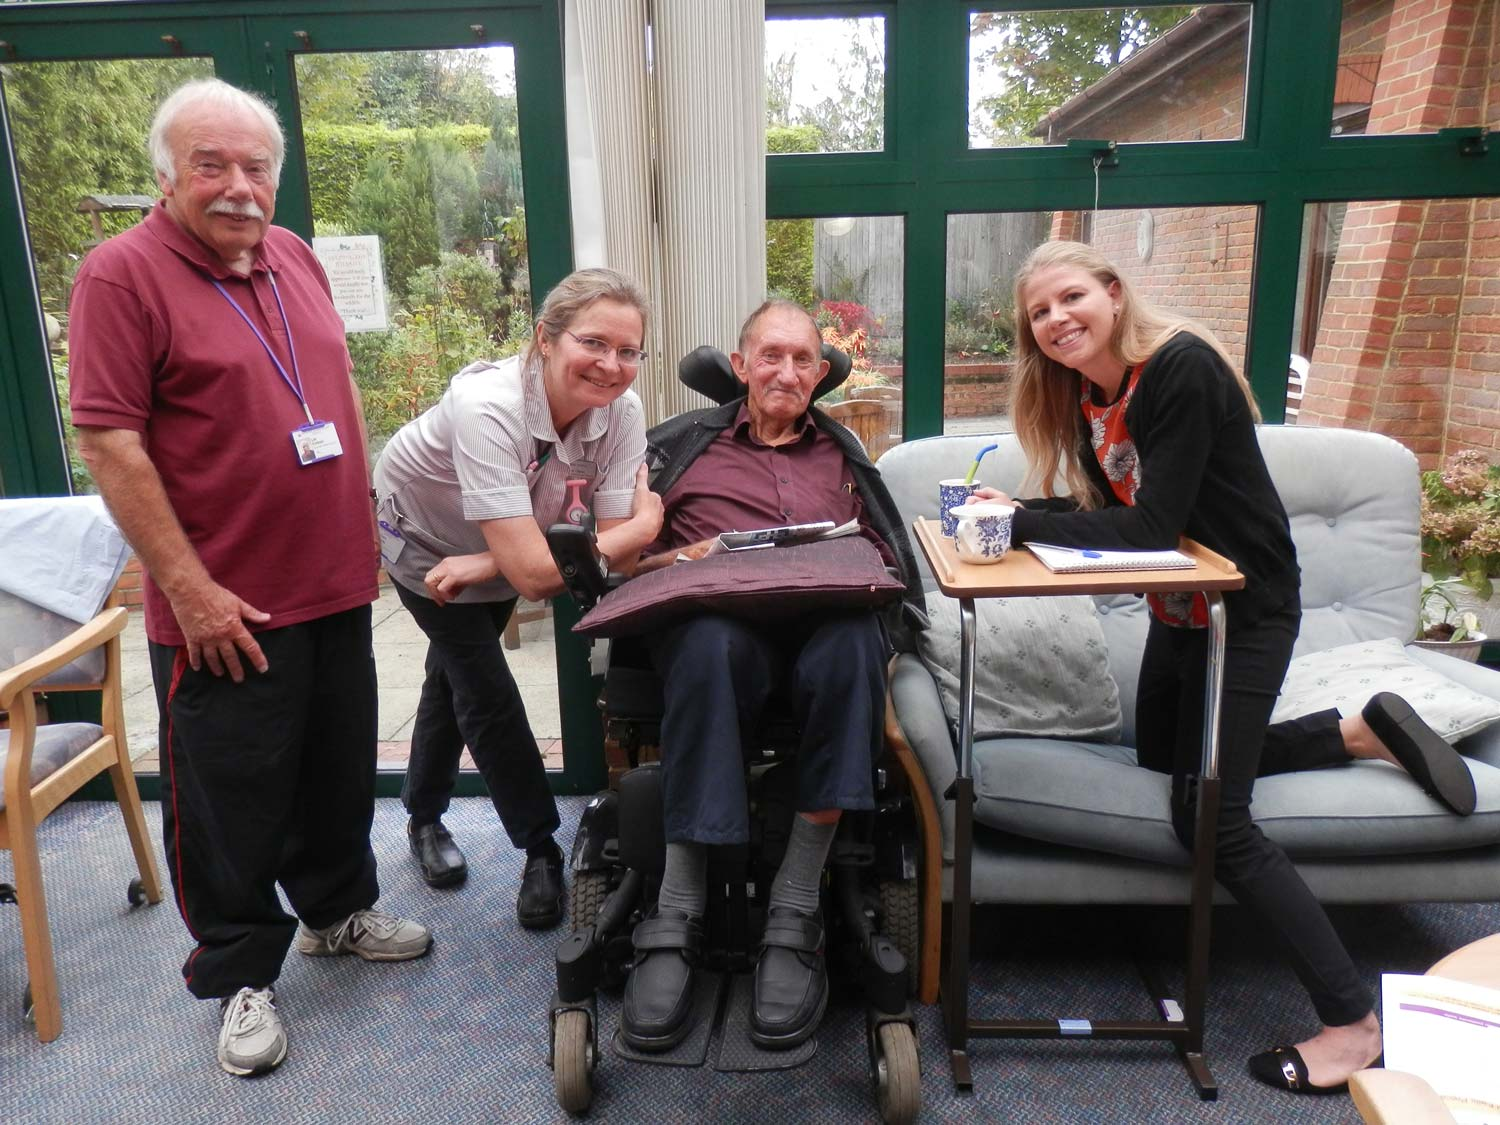 Emma, on the right, found the Woking Hospice a warm and welcoming place.